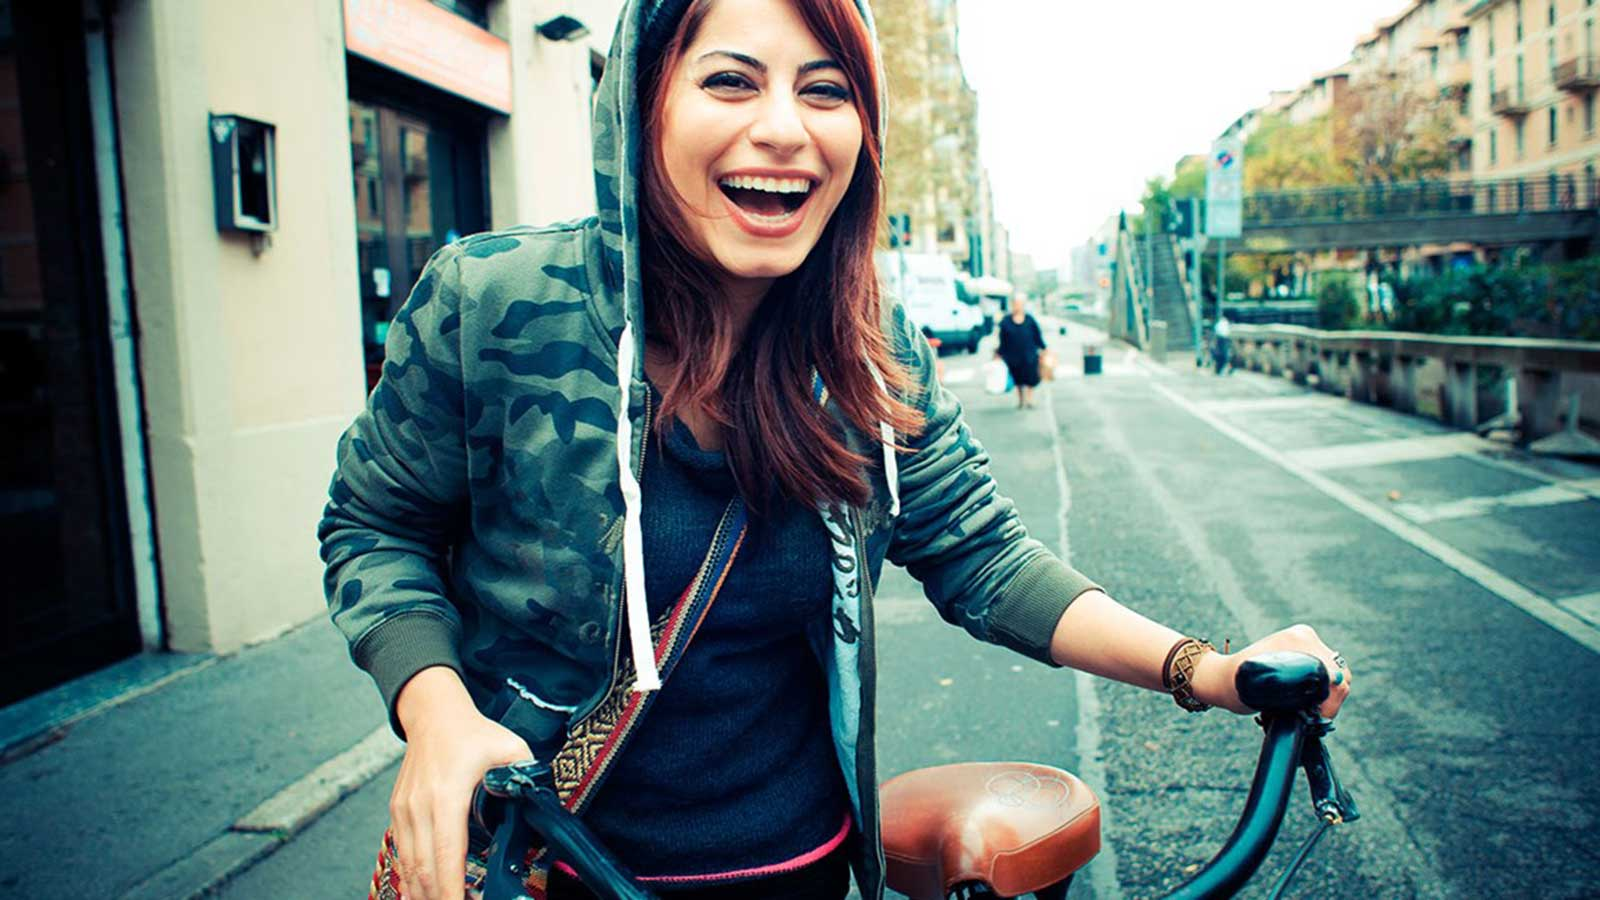 happy girl with a bike